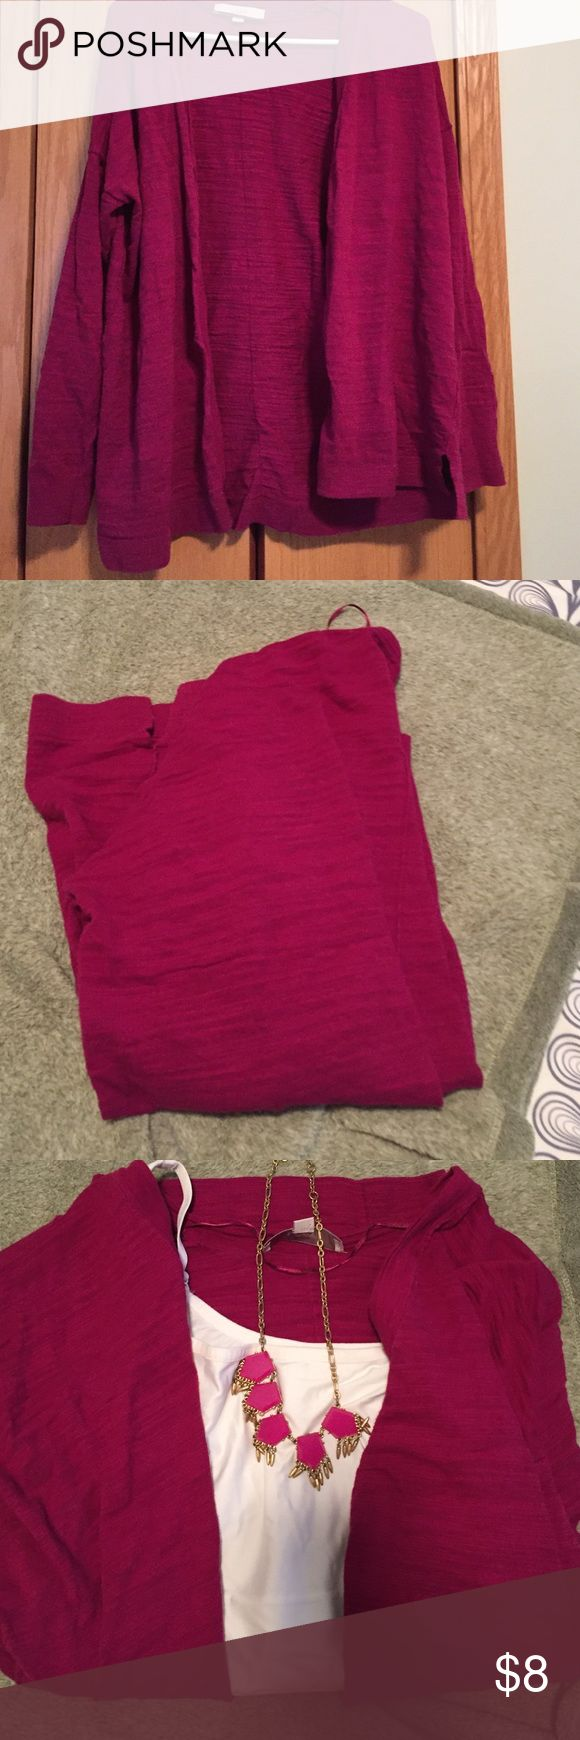 EUC LOFT Open front cardigan LOFT open front cardigan in a deep magenta. EUC. Lightweight, long sleeves, slightly oversized fit. Material has a burnout quality to it . LOFT Sweaters Cardigans